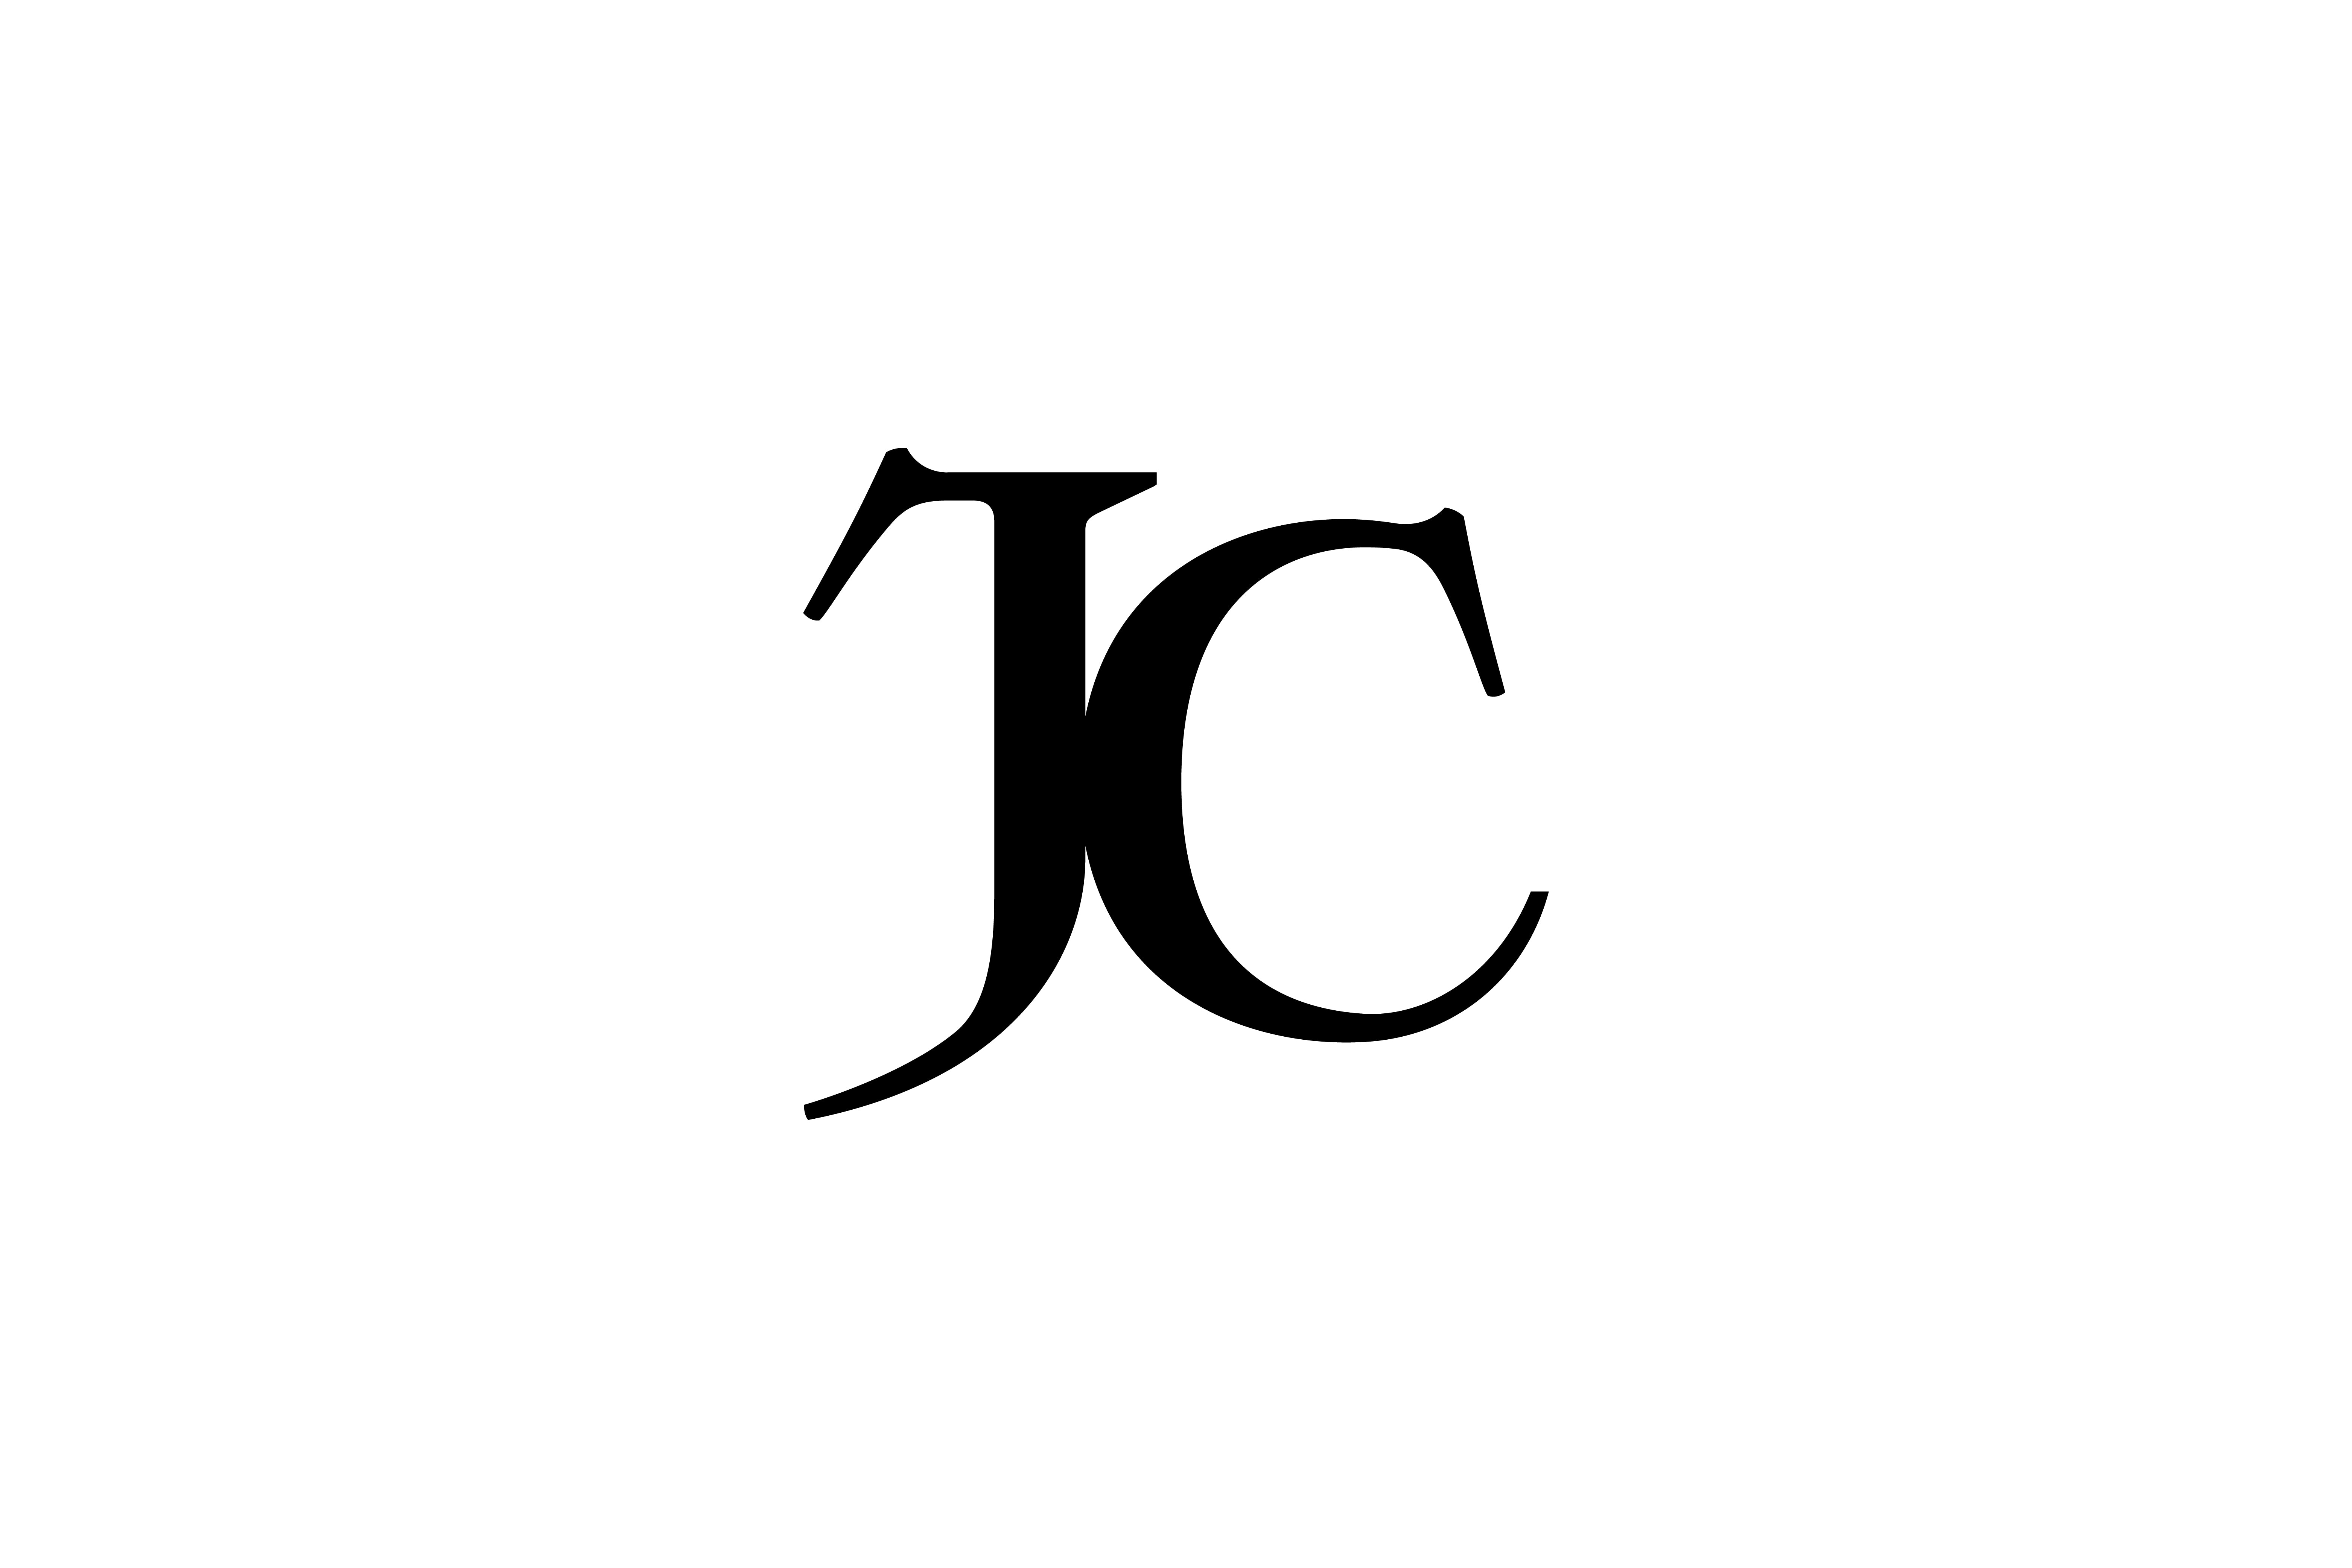 Fashion Typography JC logo - Moshik Nadav